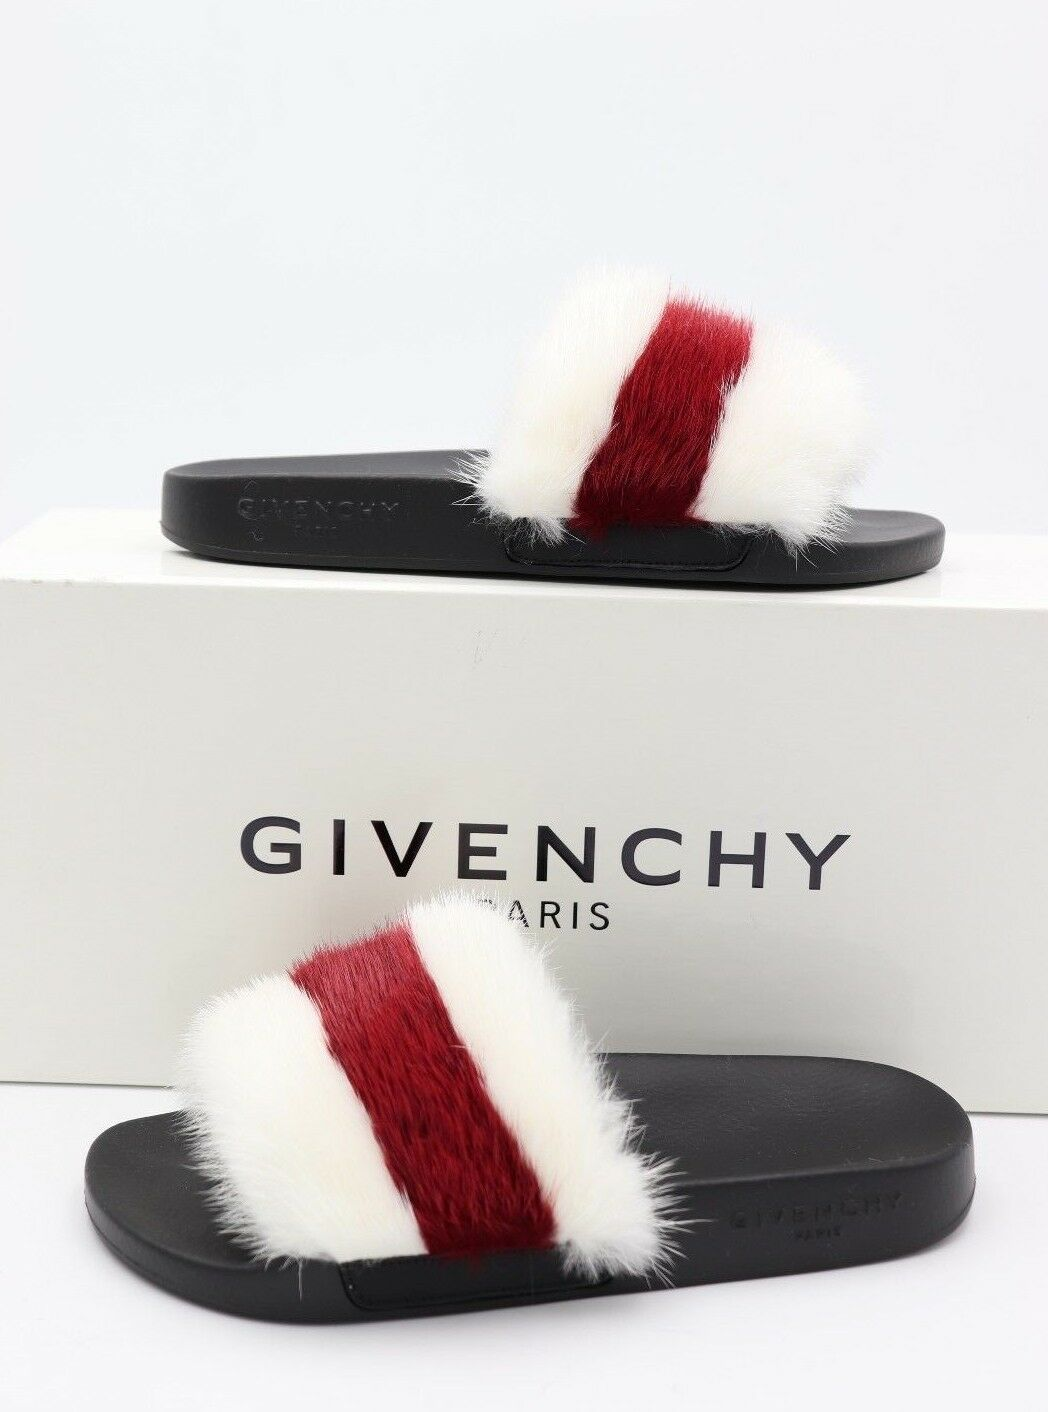 NIB GIVENCHY Stripe Mink Fur White Red Slide Sandals Flats New 6 36  $625